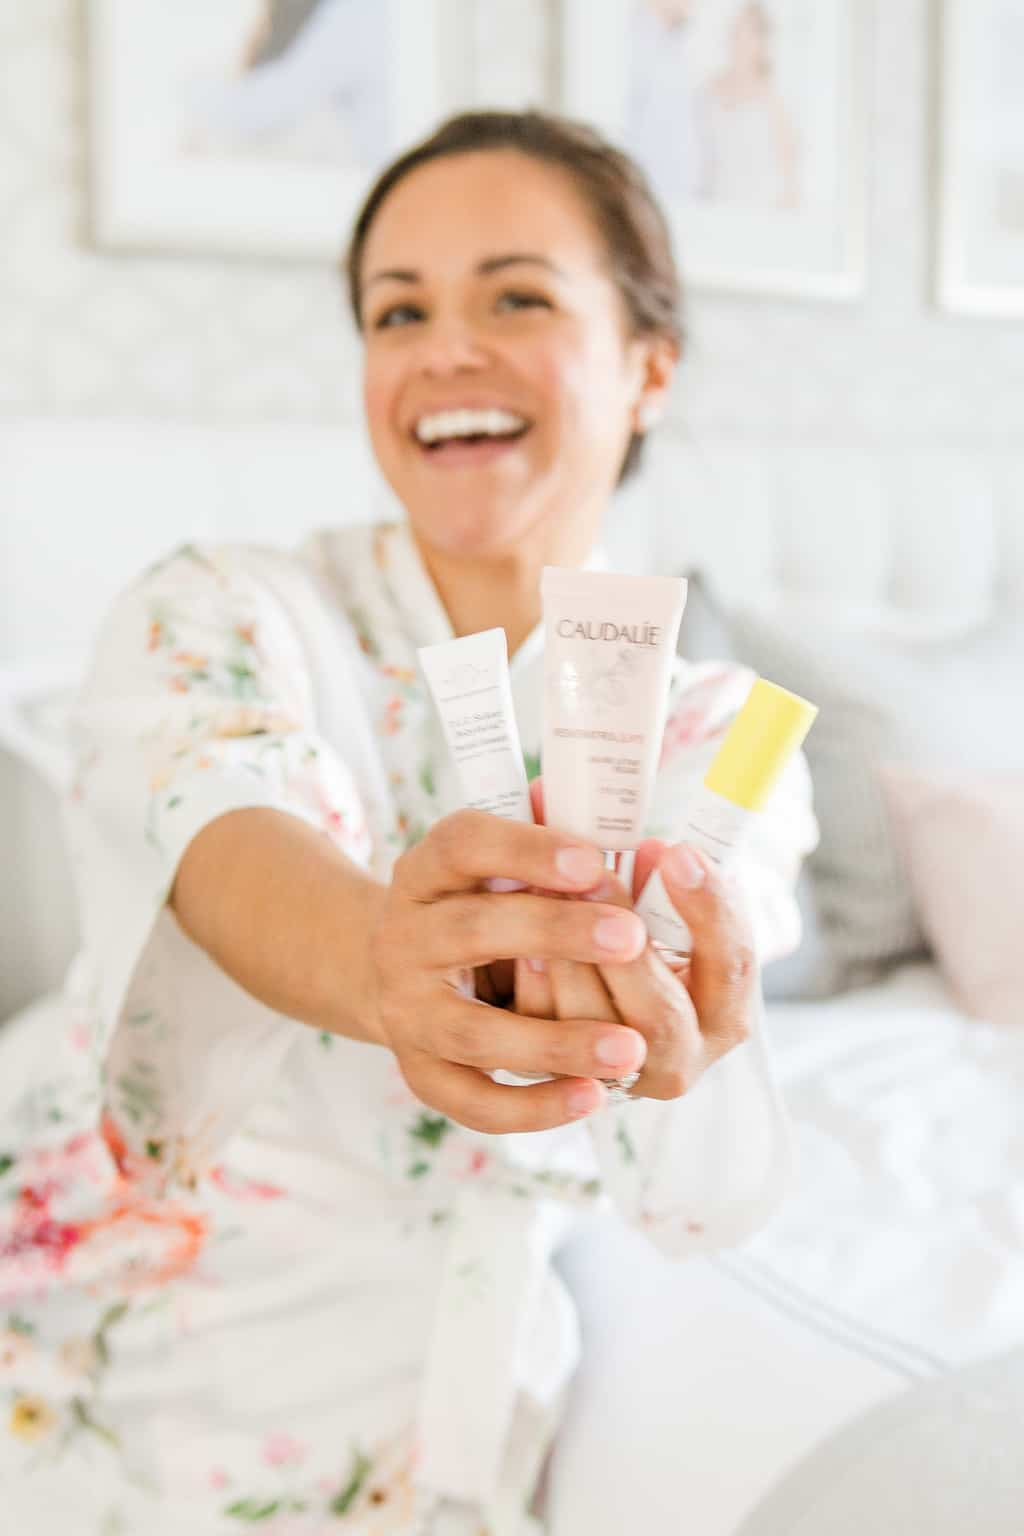 woman holding Drunk Elephant and Caudalie clean beauty products for oily skin